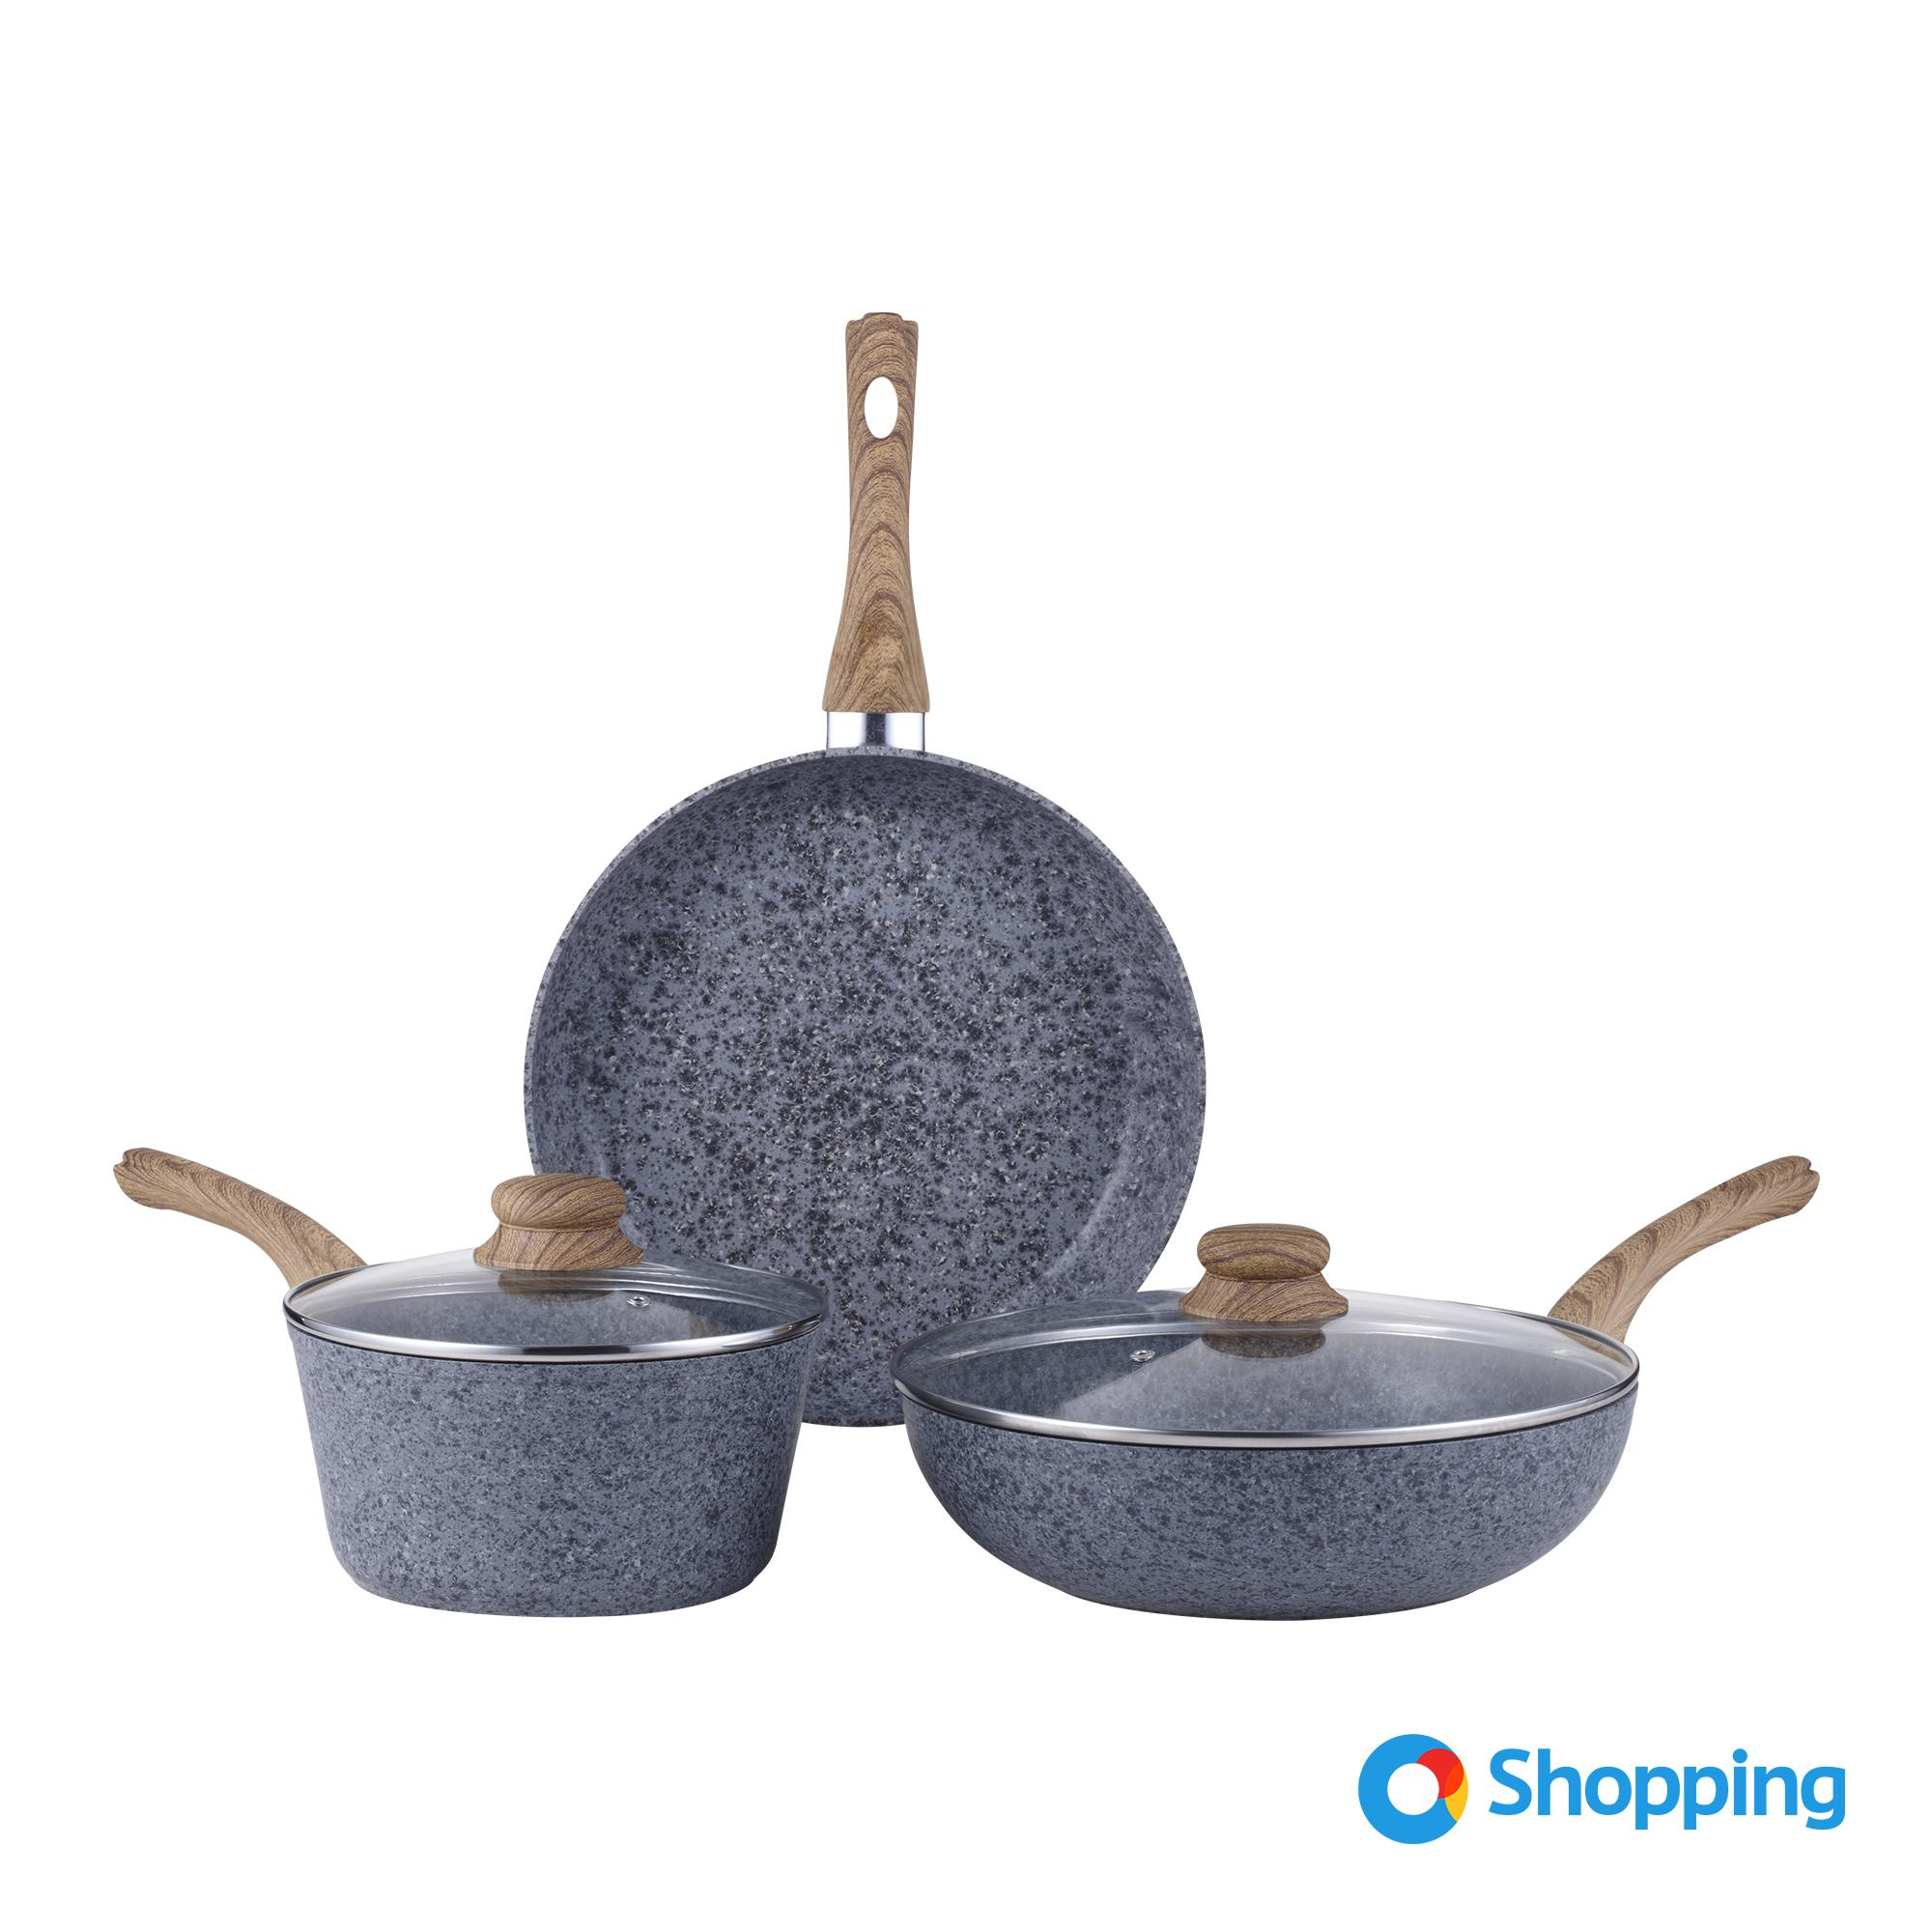 7e90641d366 Cookware for sale - Cooking Ware Products prices, brands & review in ...